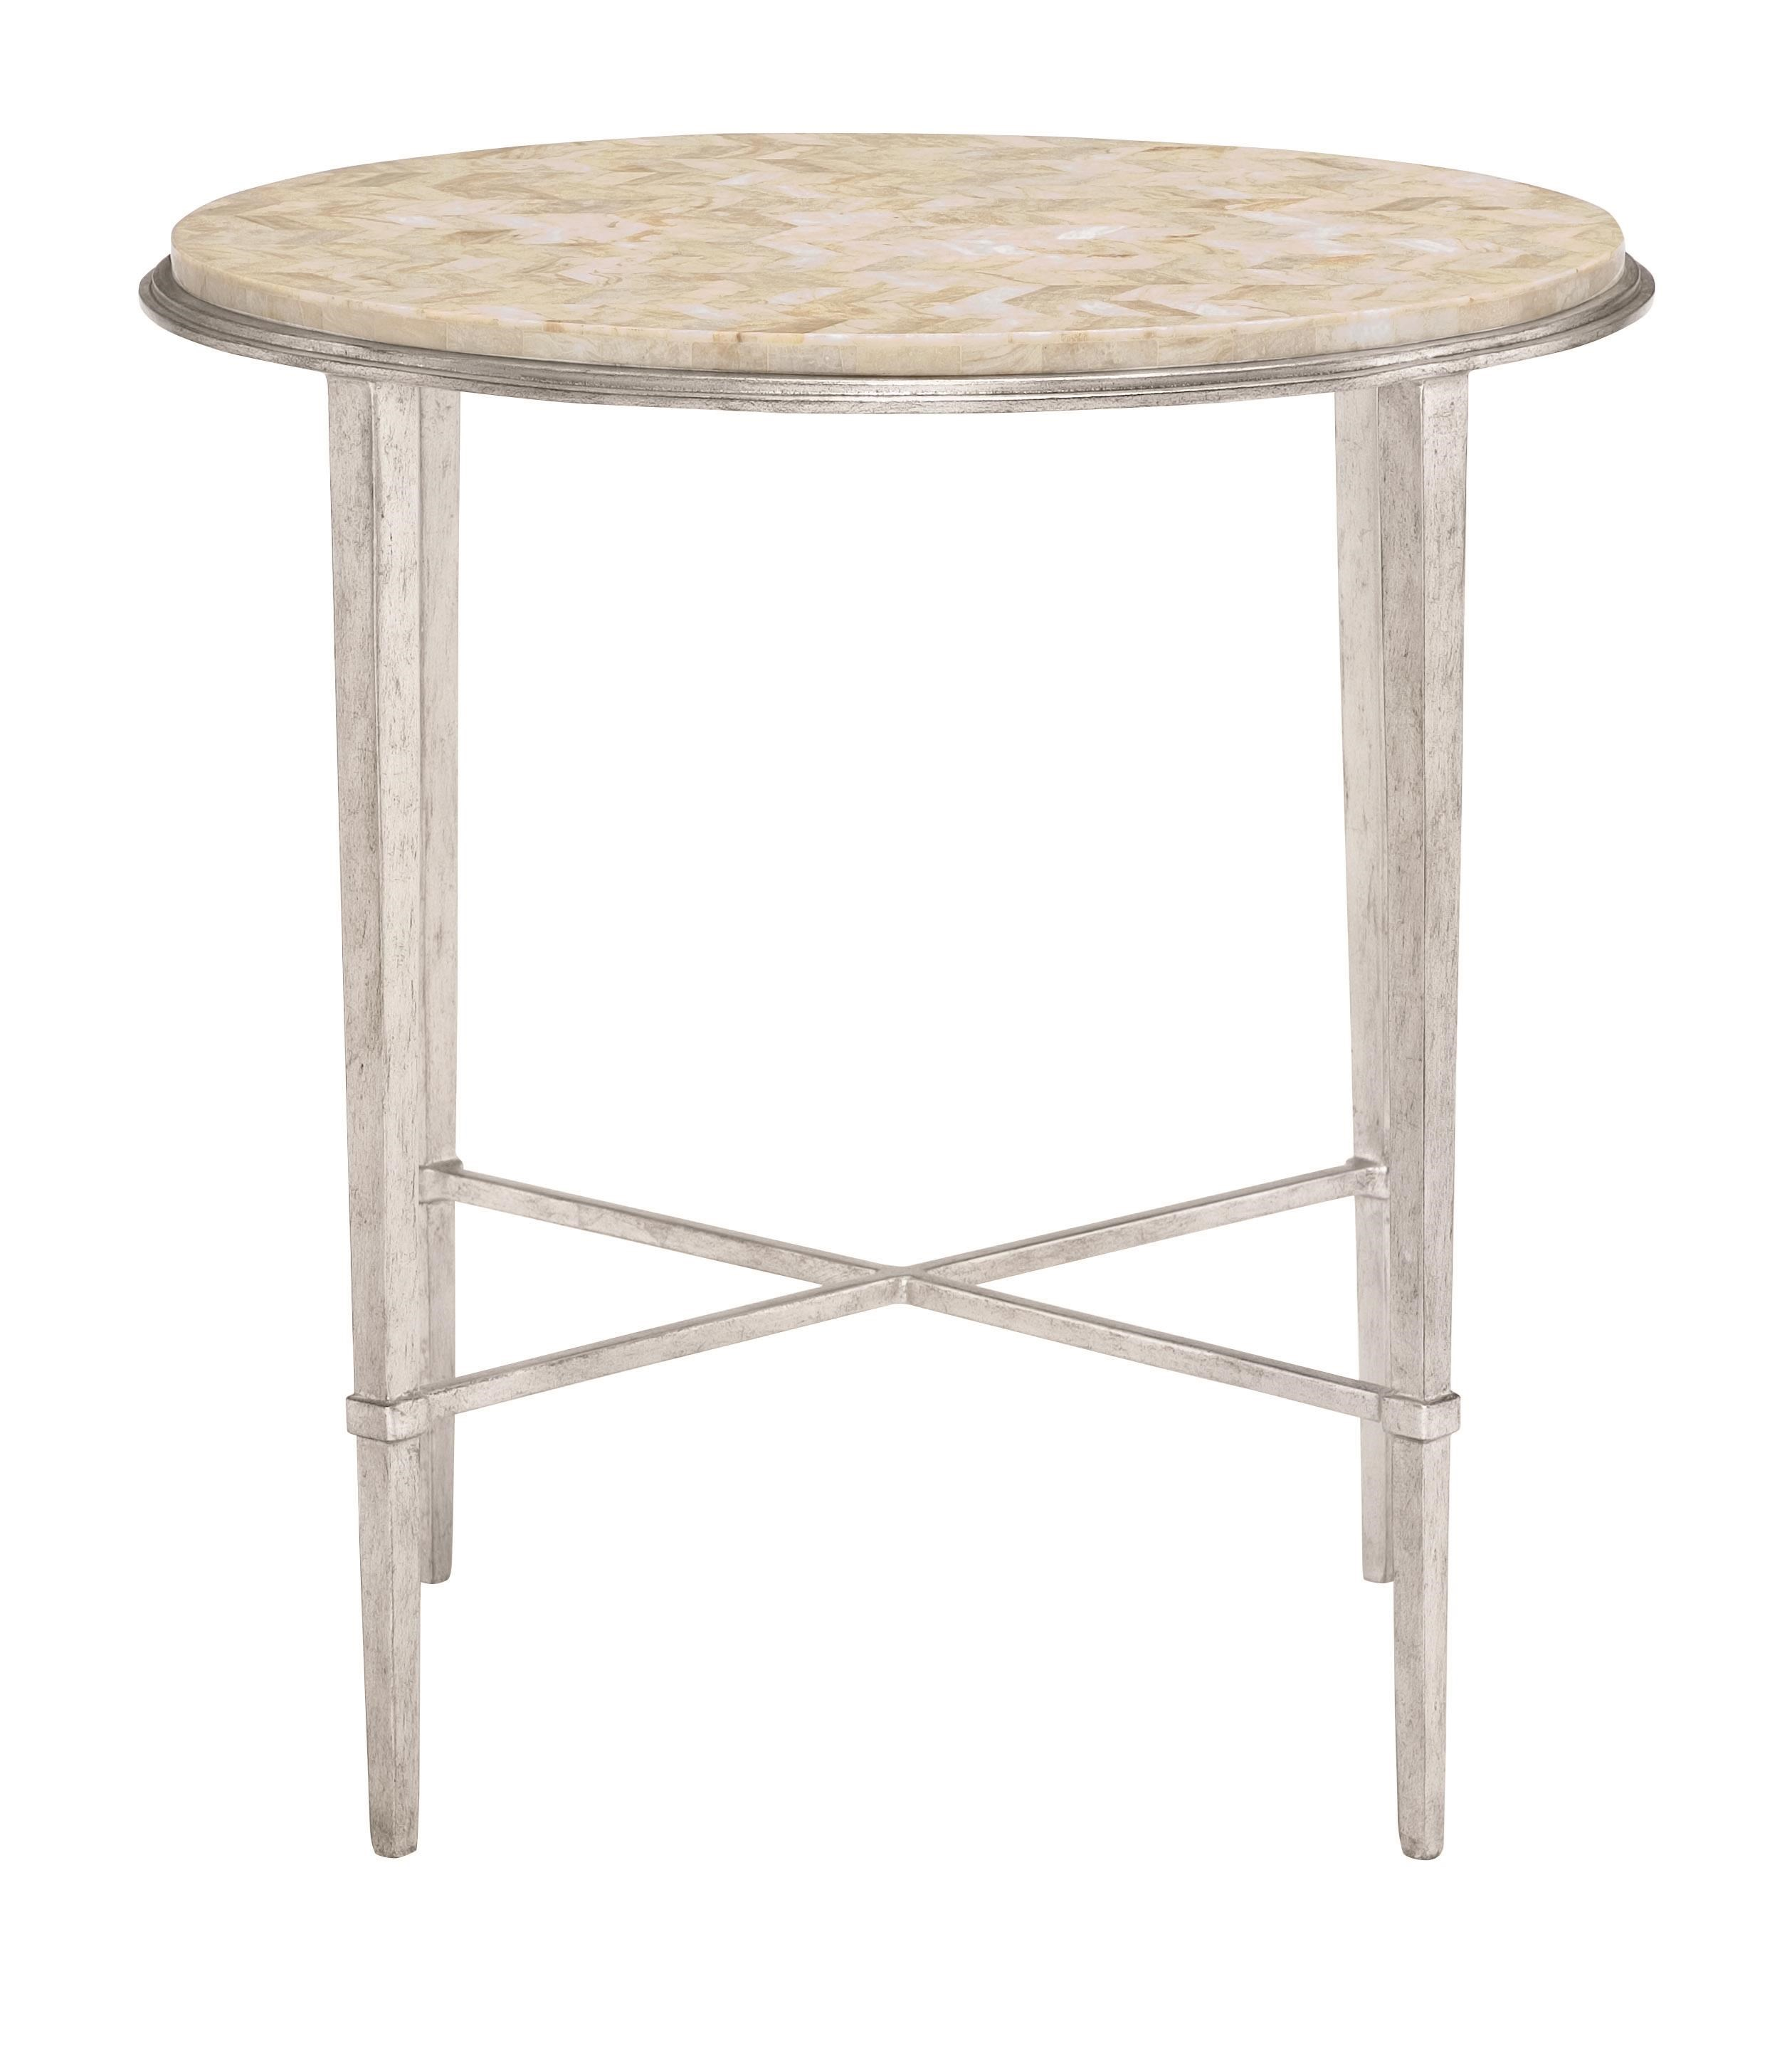 Solange Solange Round Chair Side Table by Bernhardt at Morris Home